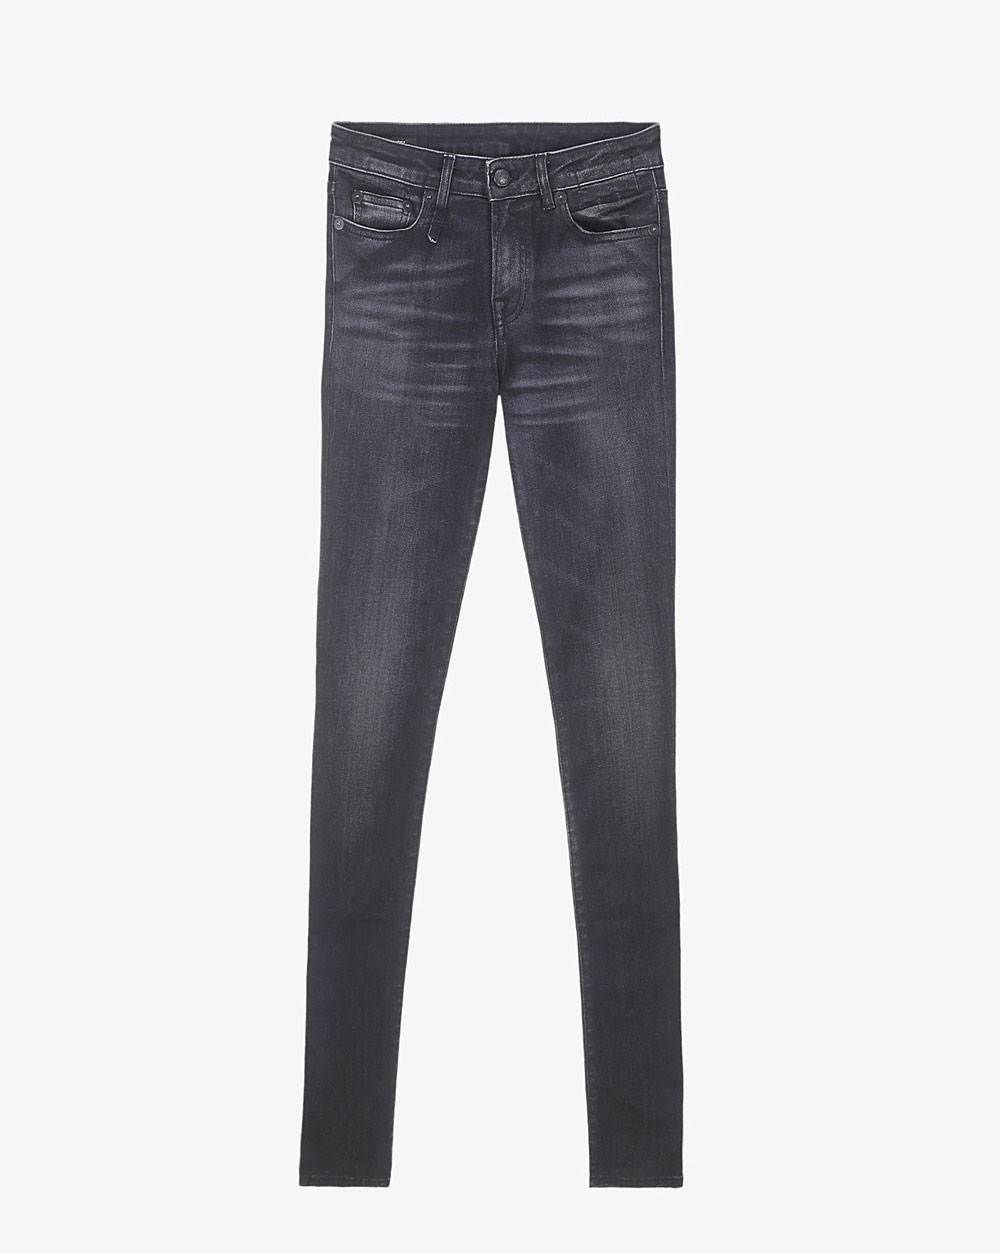 R13 Denim Collection Alison Skinny - Dirty Black